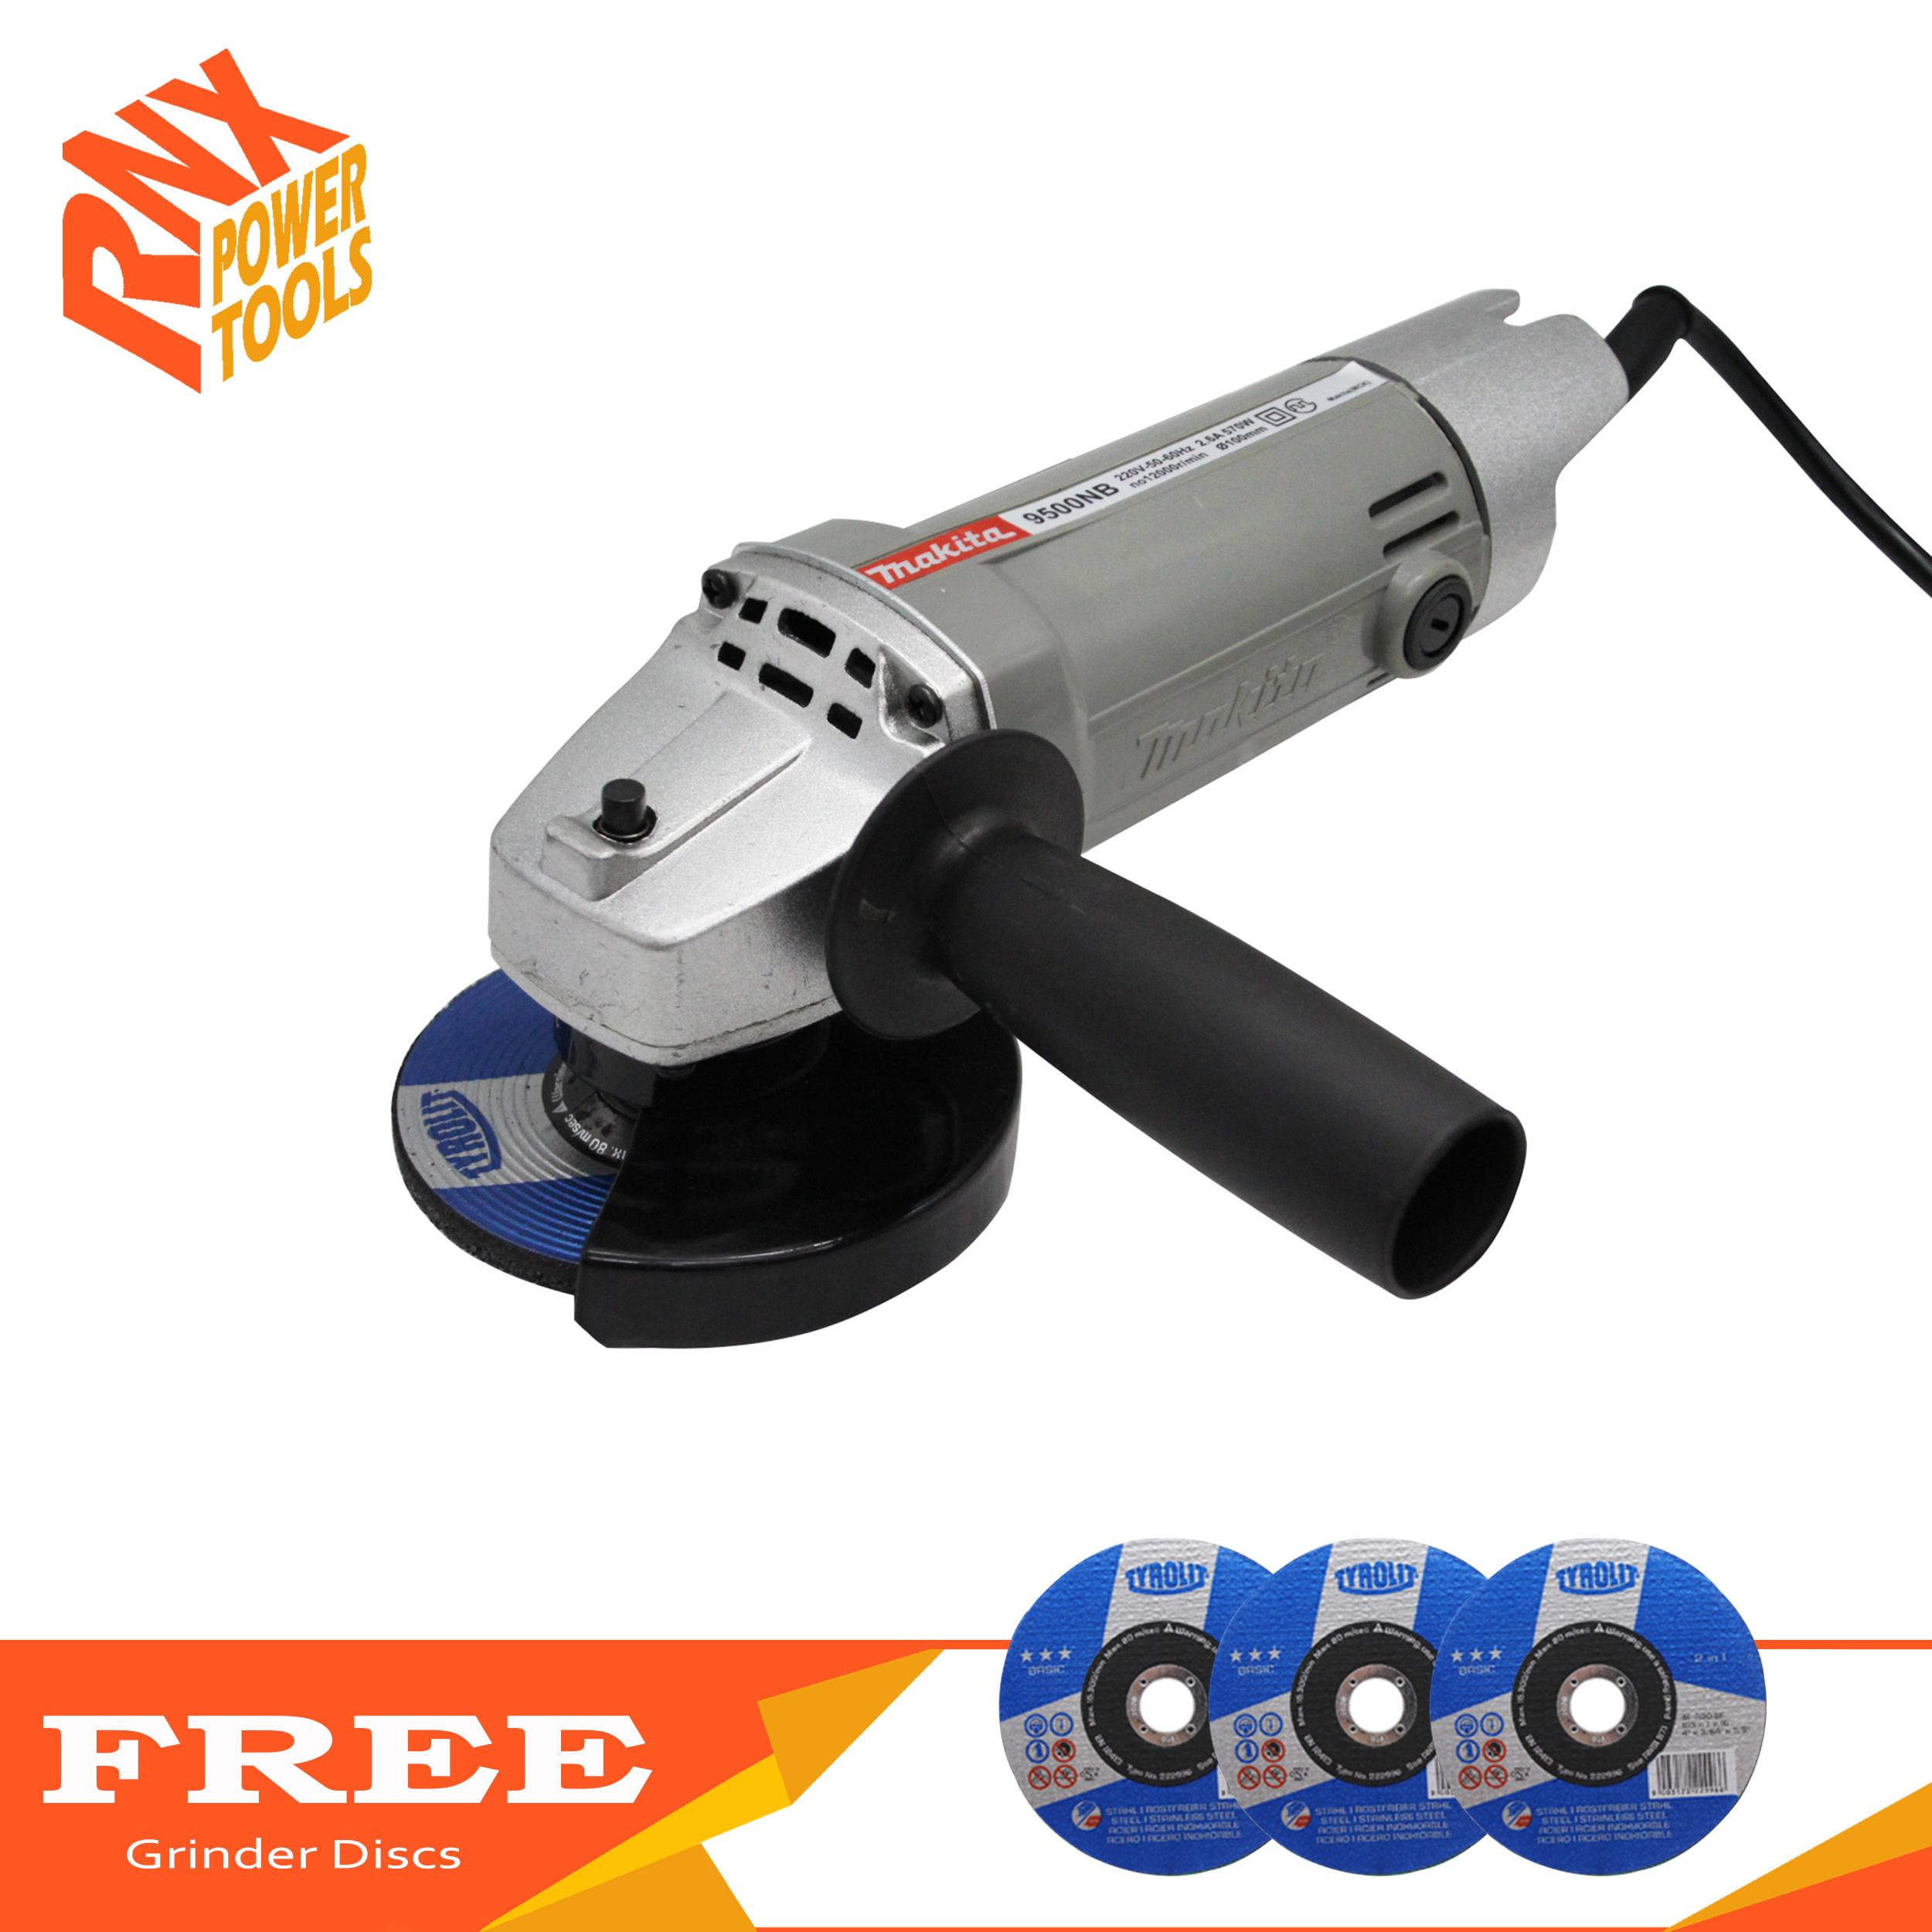 Bosch Small Angle Grinder Gws 8 100 Z With 3 Accessories